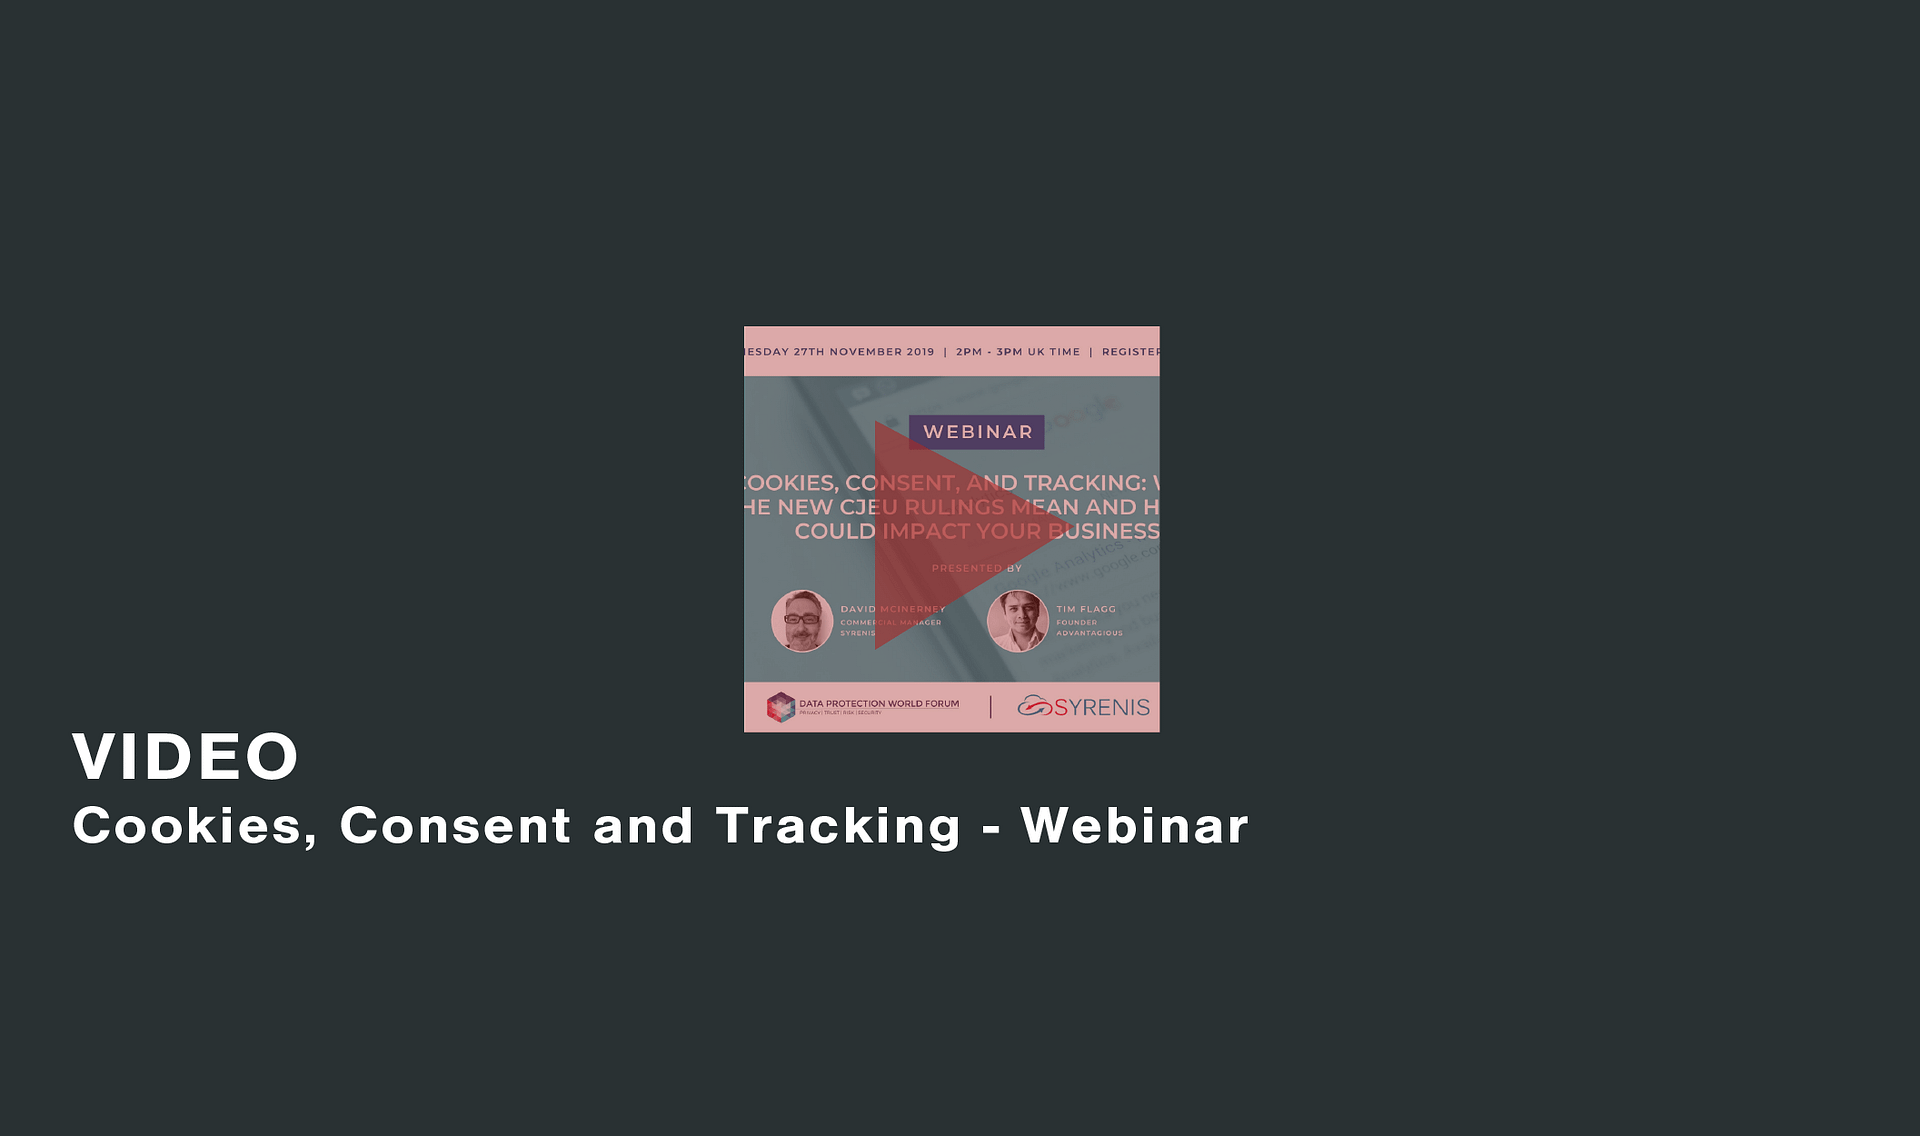 Cookies-Consent-and-Tracking-Webinar